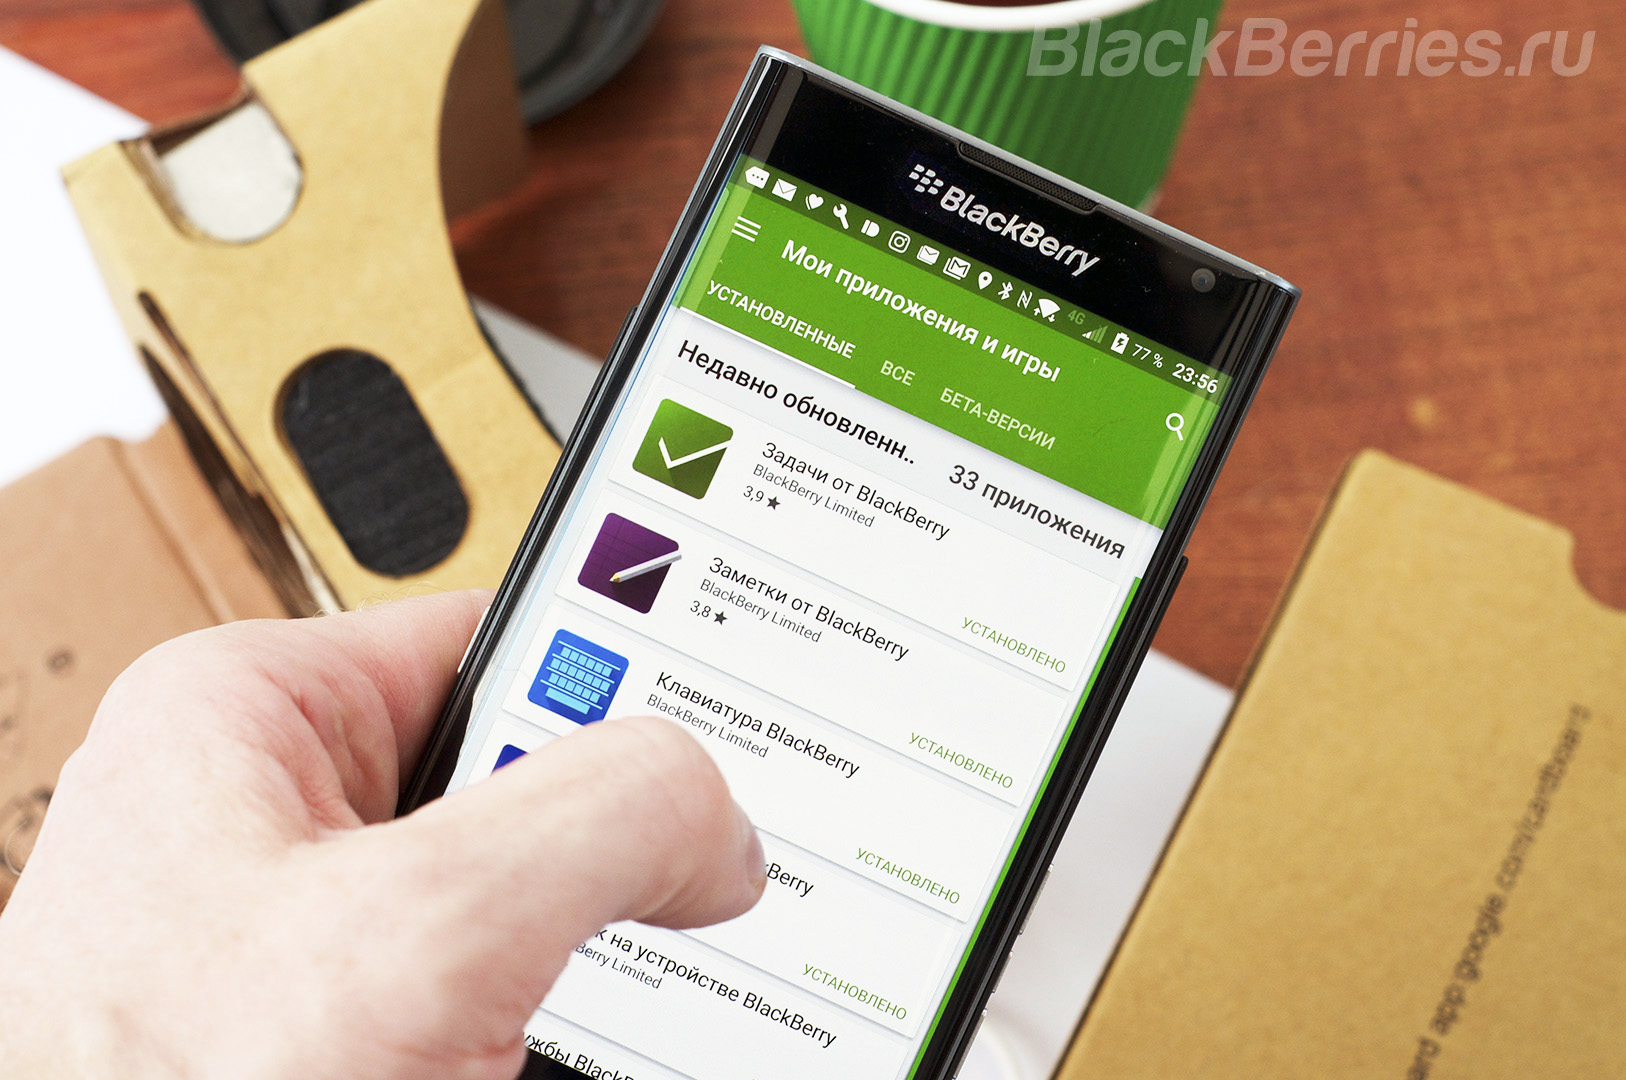 blackberry-priv-apps-27